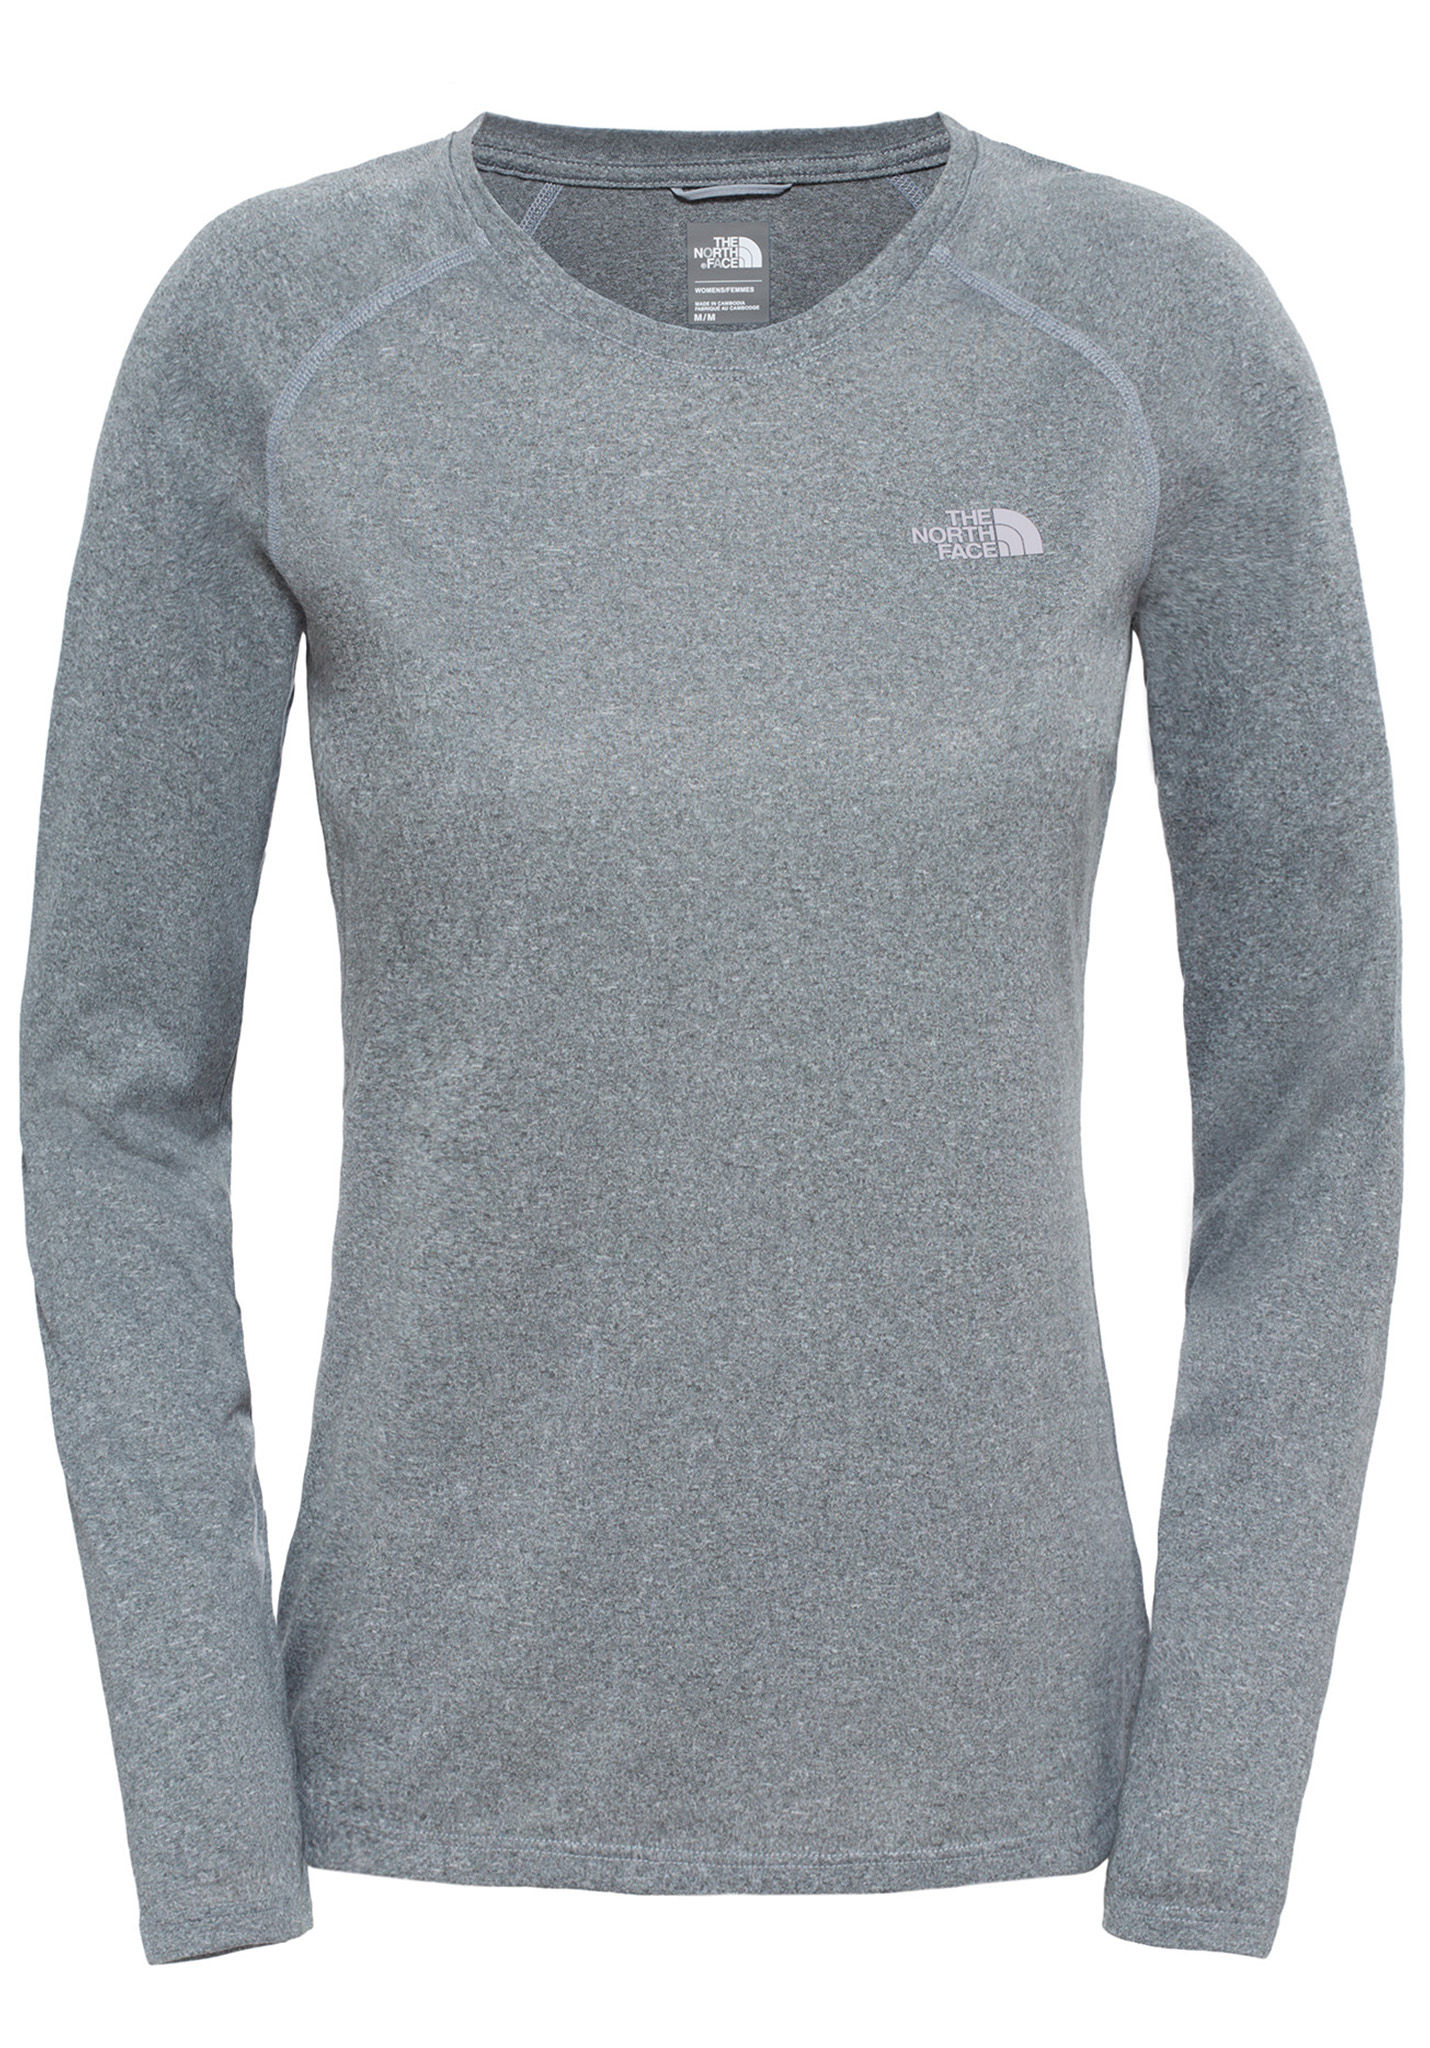 7385b3c5fea5 THE NORTH FACE Reaxion Amp Crew - Long-sleeved Shirt for Women - Grey -  Planet Sports